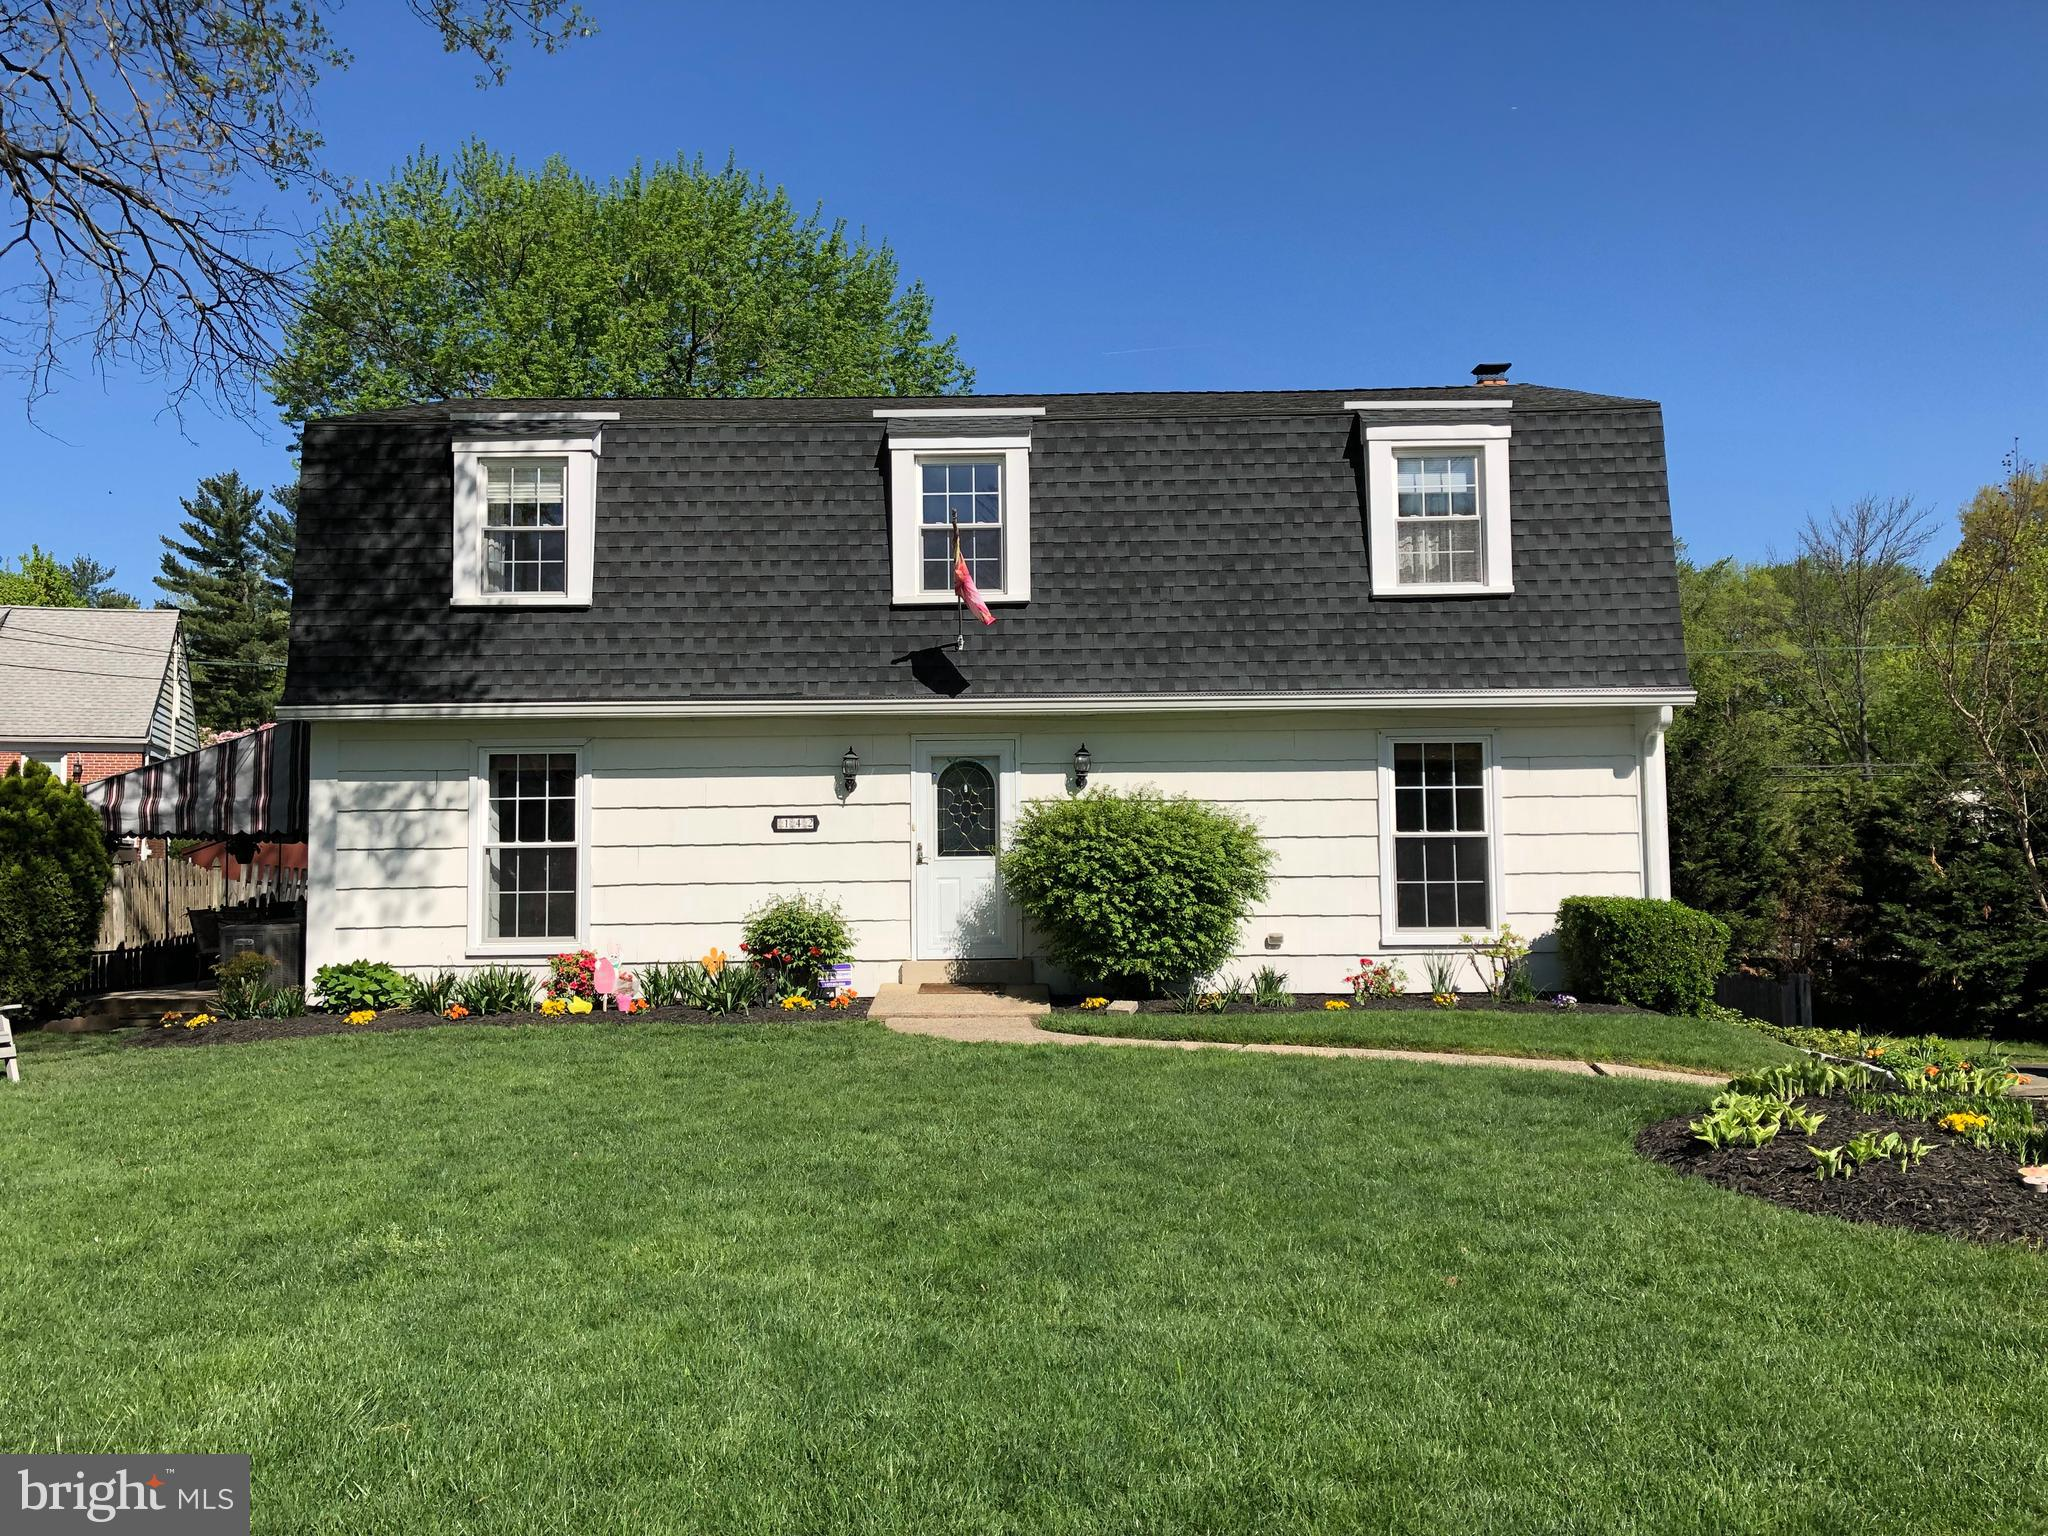 142 OLD STATE ROAD, SPRINGFIELD, PA 19064